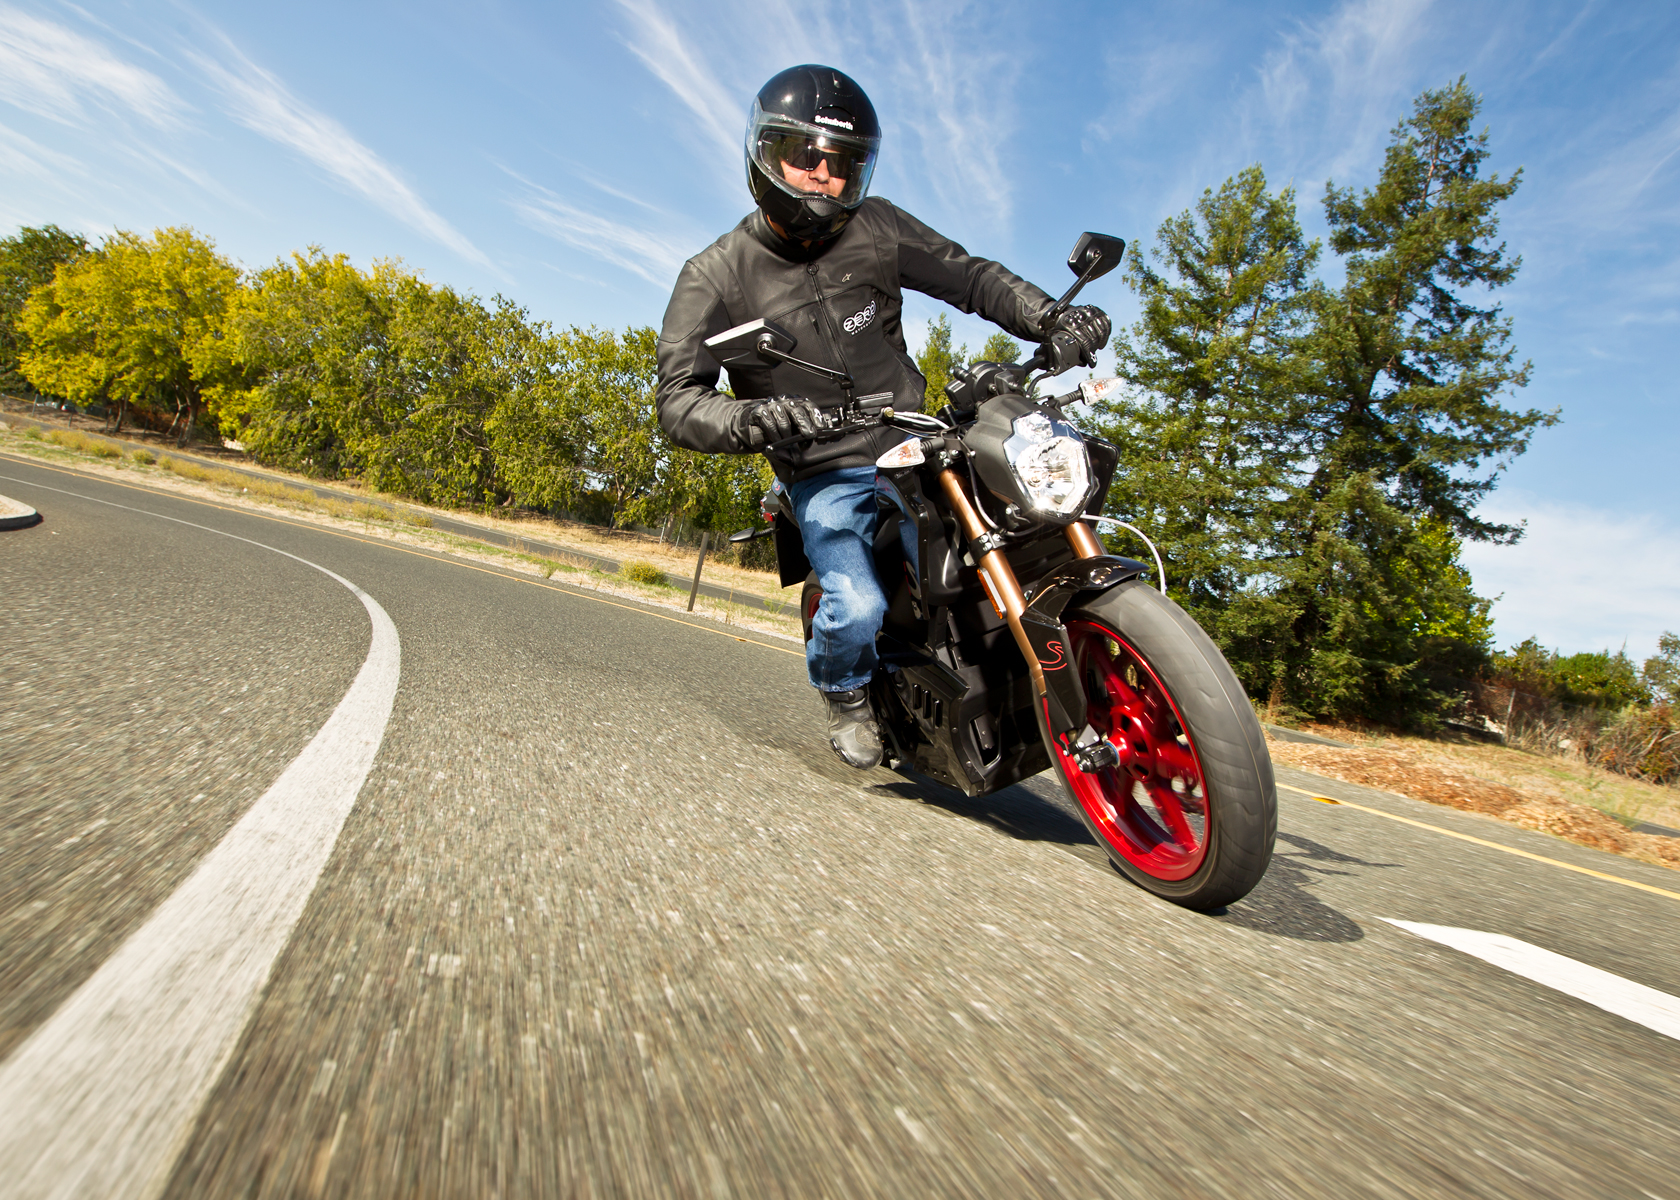 '.2012 Zero S Electric Motorcycle: Cruising, Lean Right.'